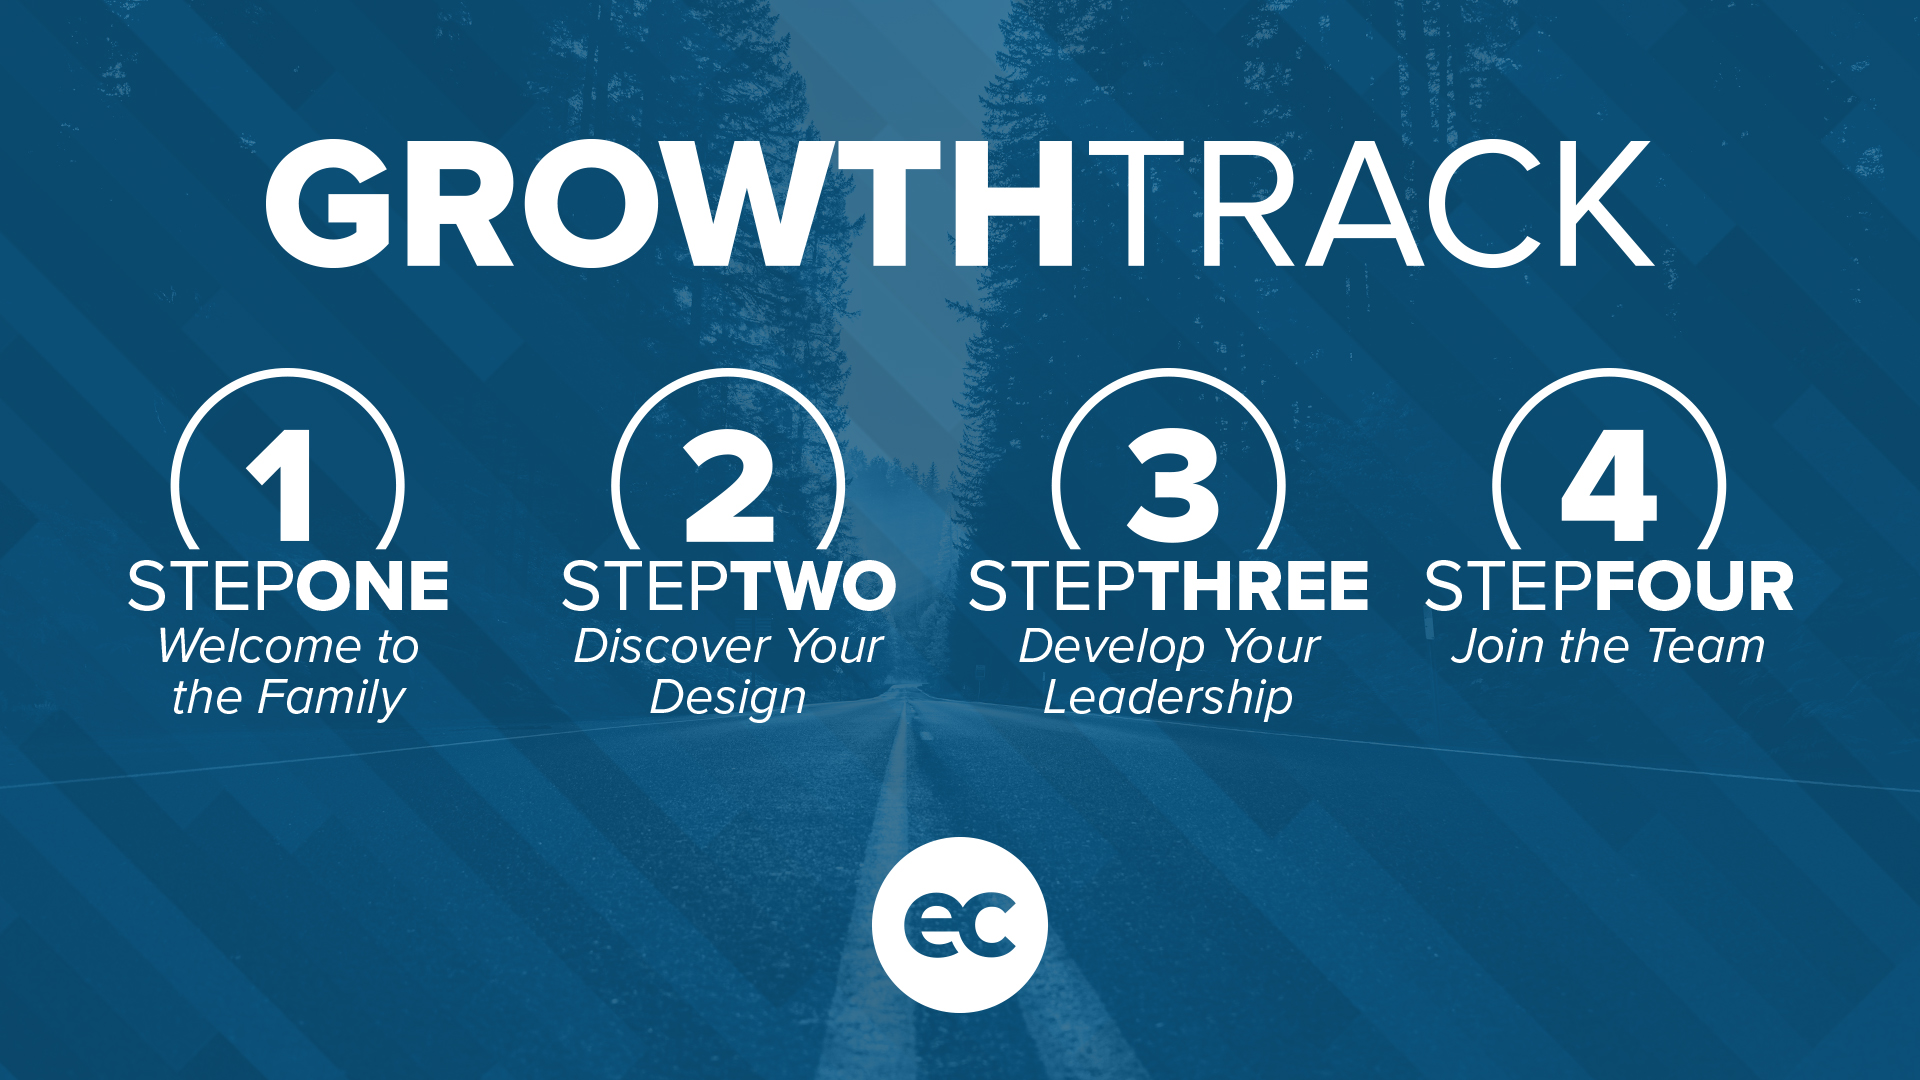 Growth Track Slide_Overview.jpg